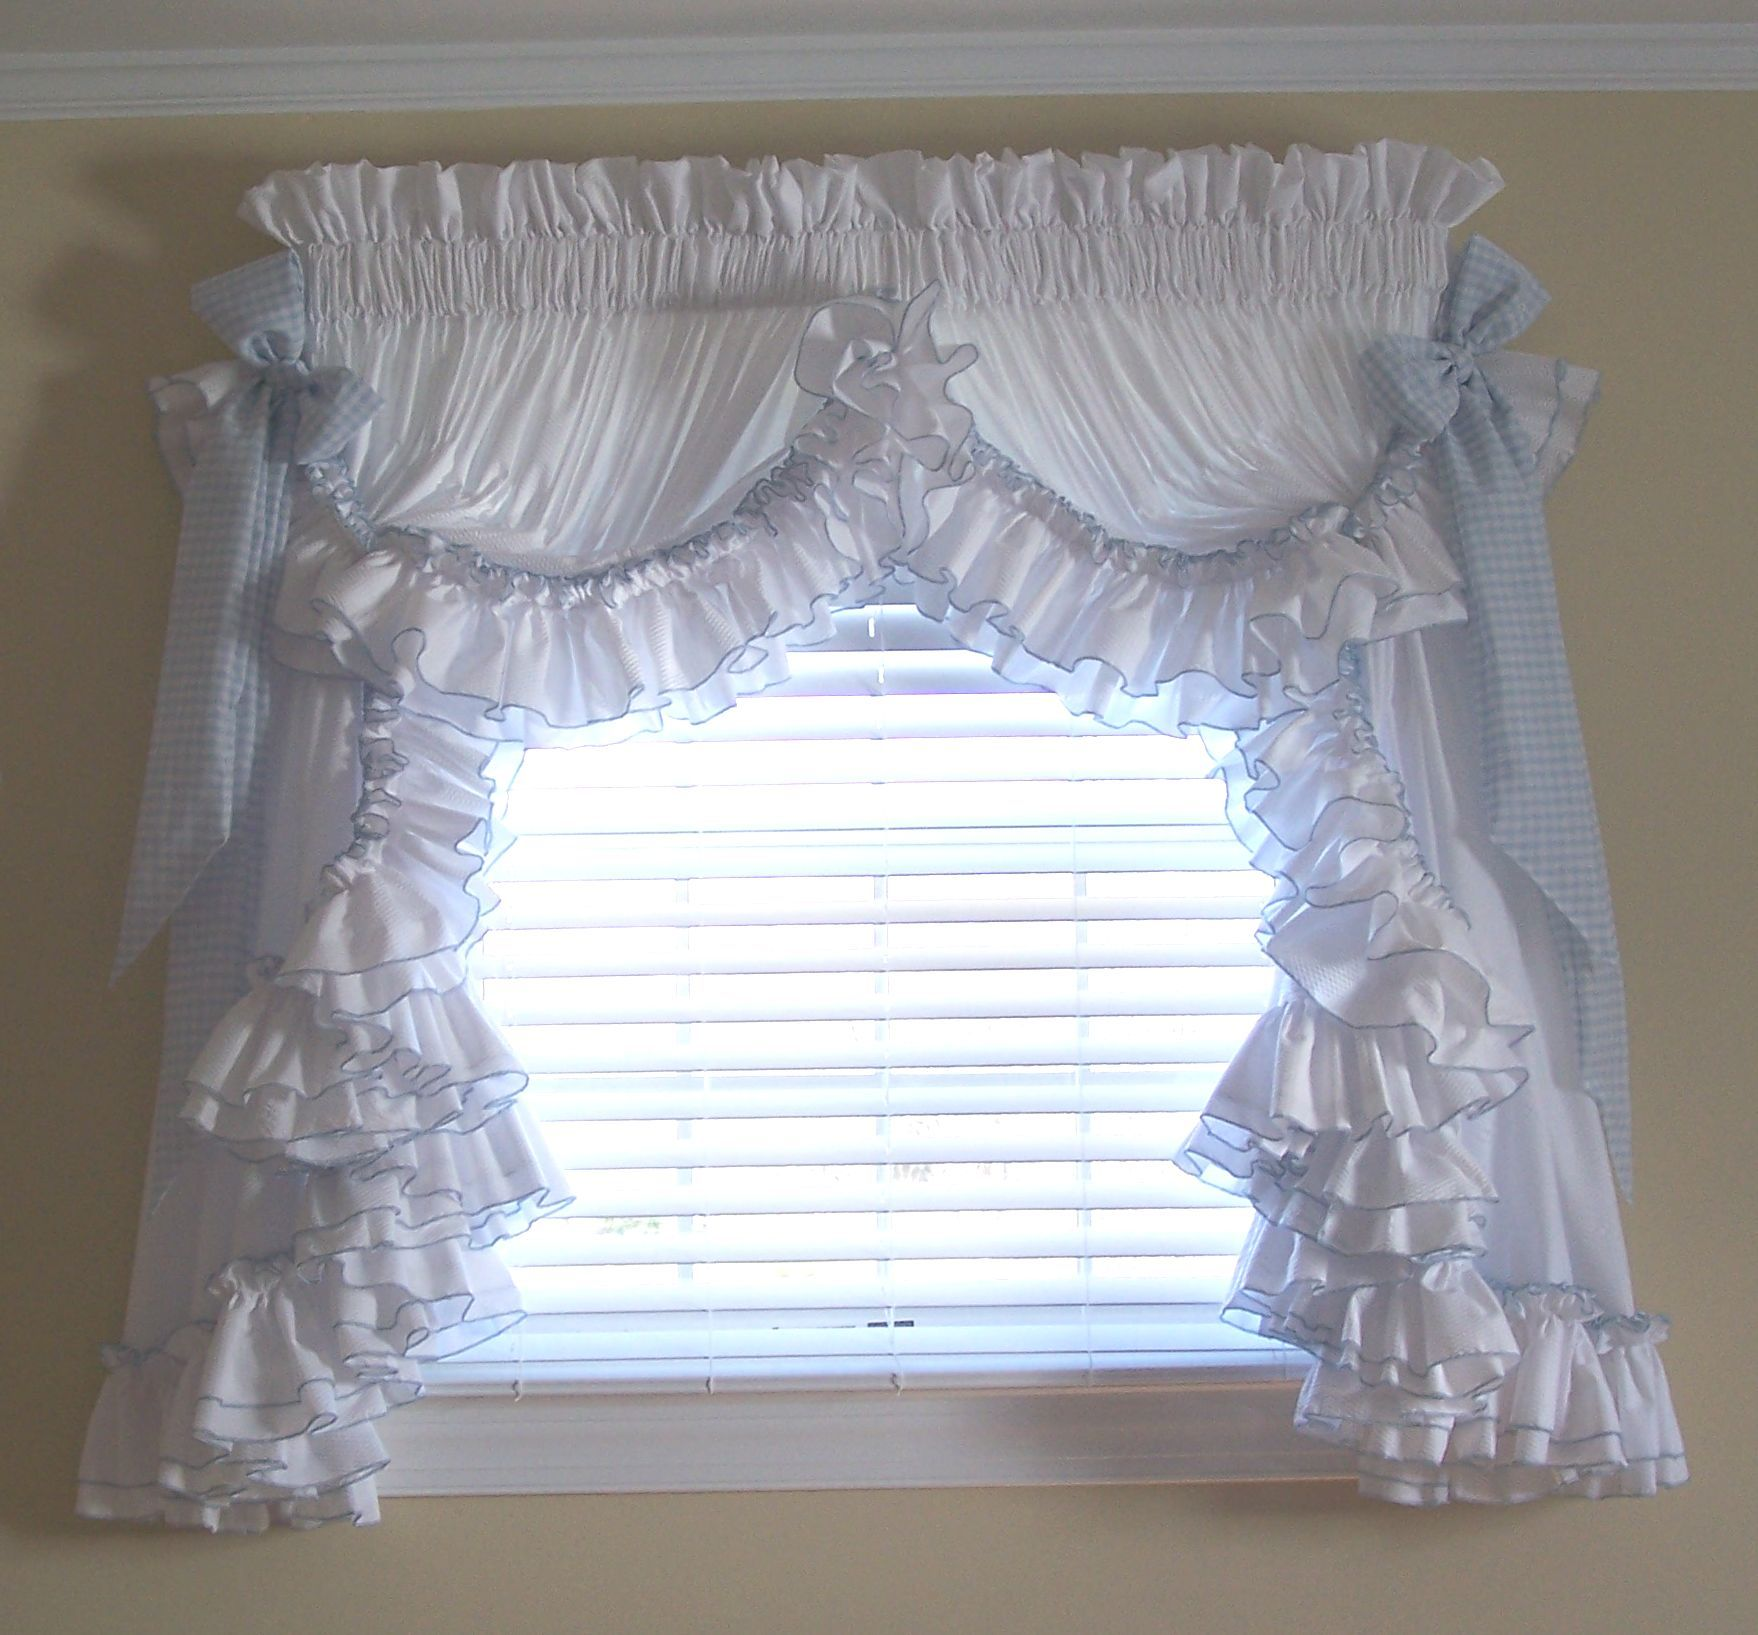 Nation Ruffled Curtains The Pure Inspirations Of Ruffled Curtain Units Function Embroidered Trim Round Layers Of Ruffle Curtains Priscilla Curtains Curtains